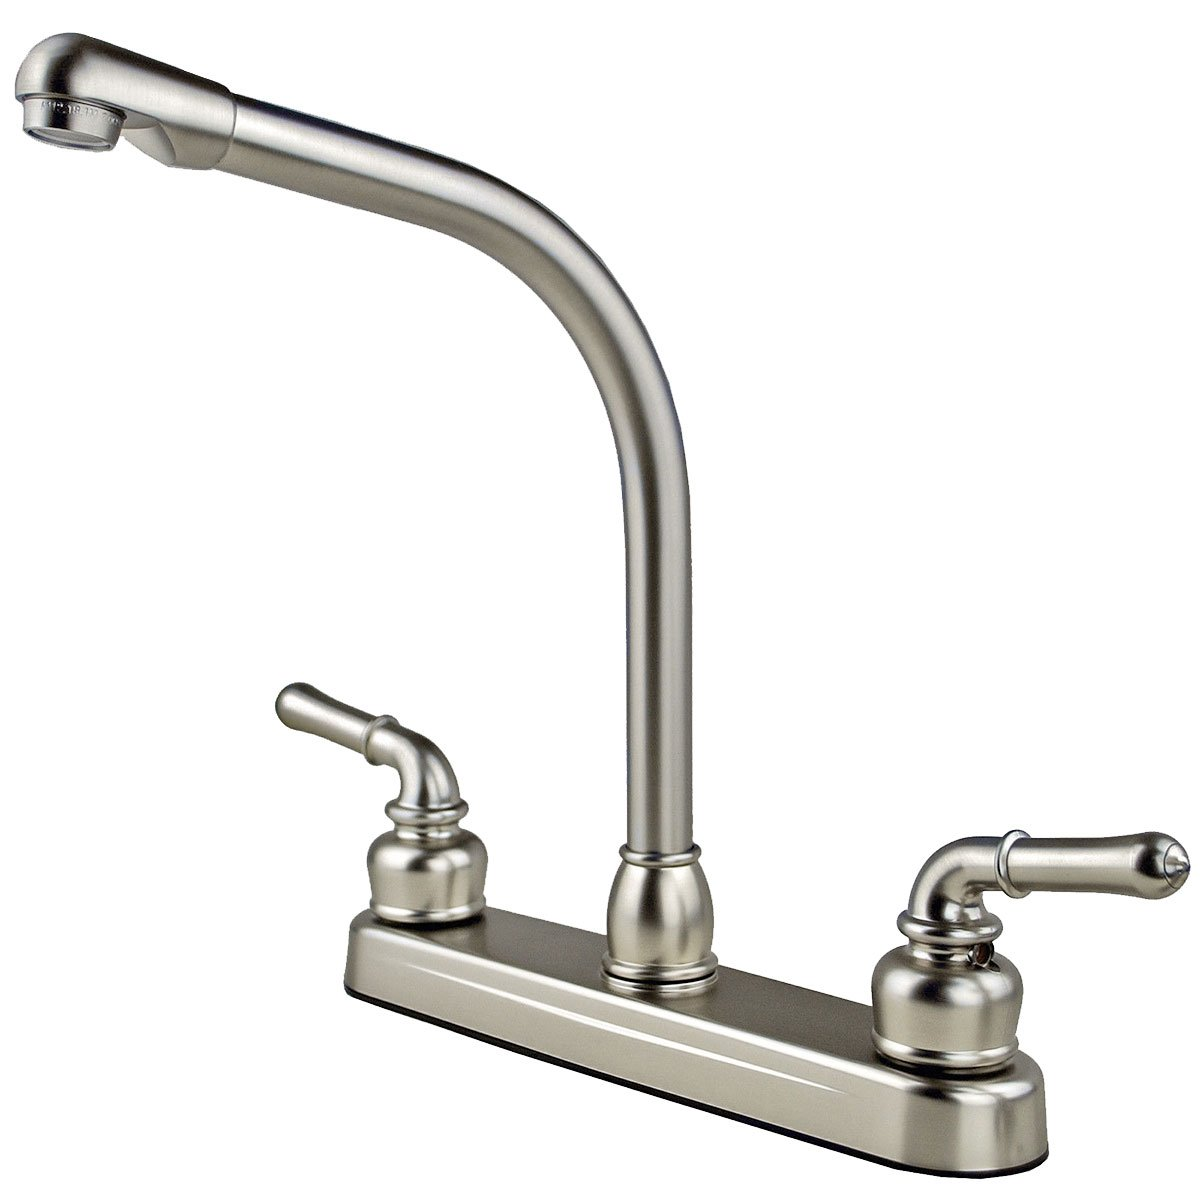 Amazon.com: RV / Mobile Home High Rise Kitchen Sink Faucet, Stainless:  Automotive